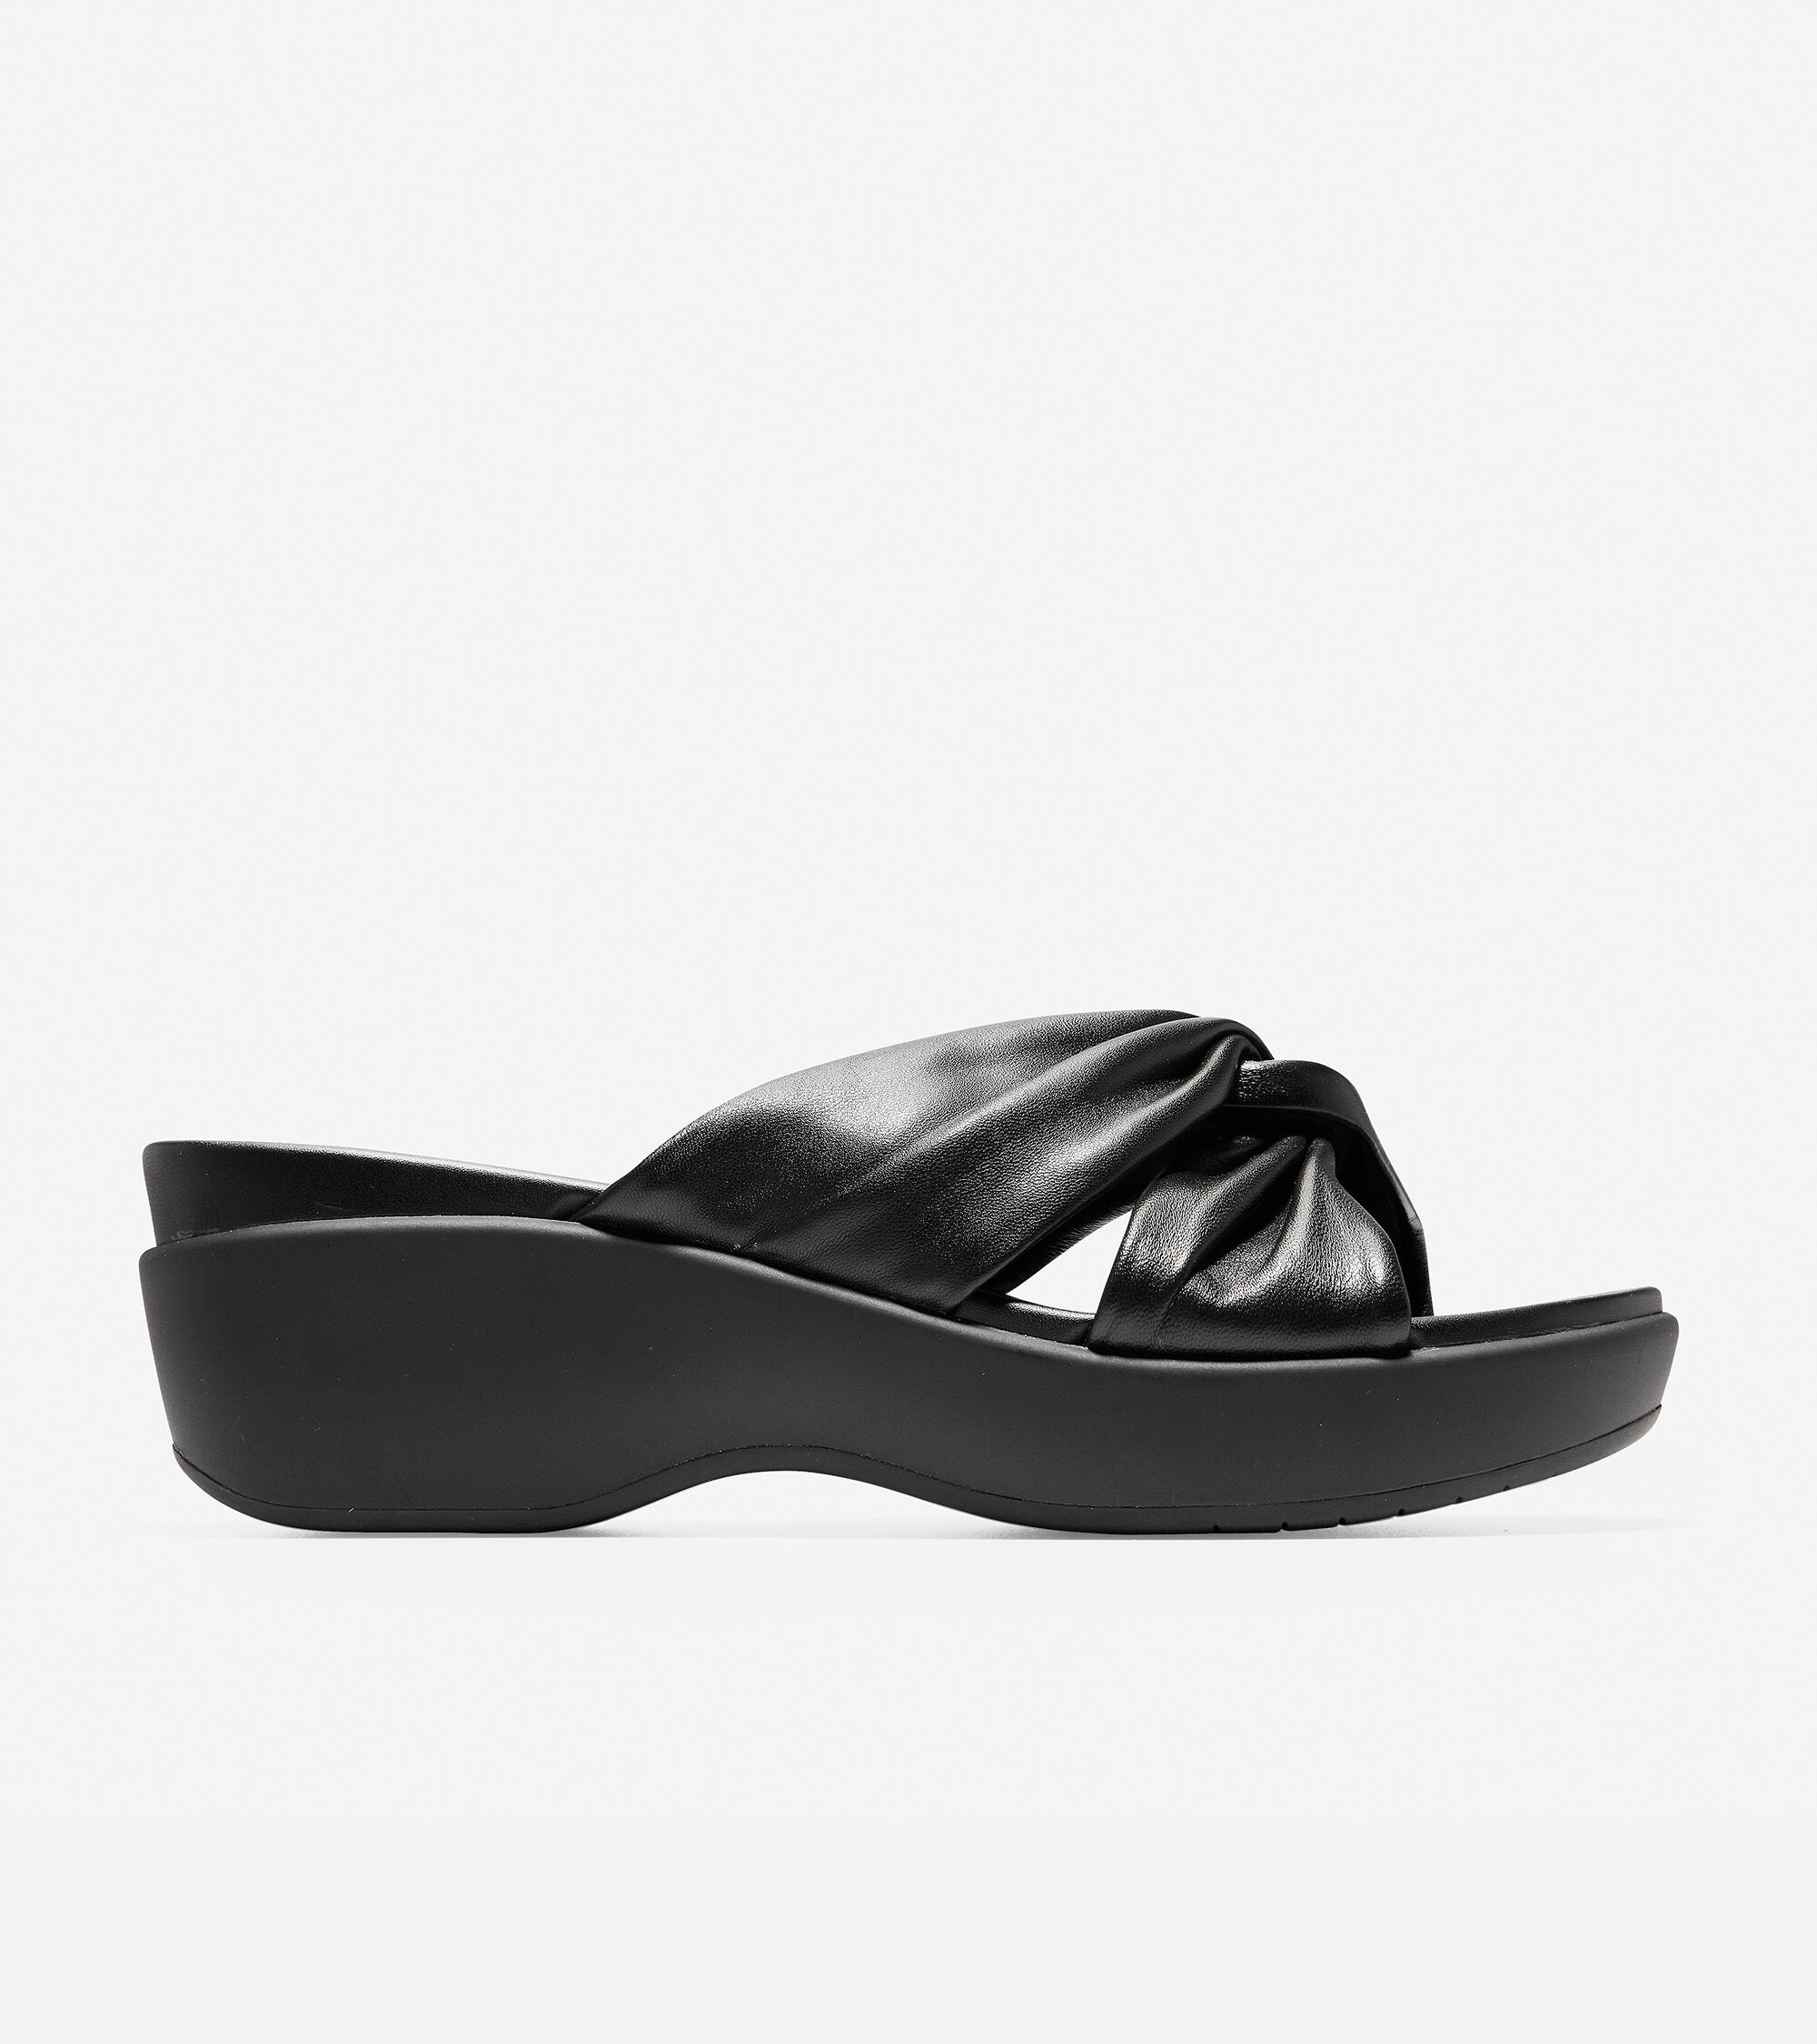 Cole Haan Women's Aubree Grand Knotted Slide Sandal